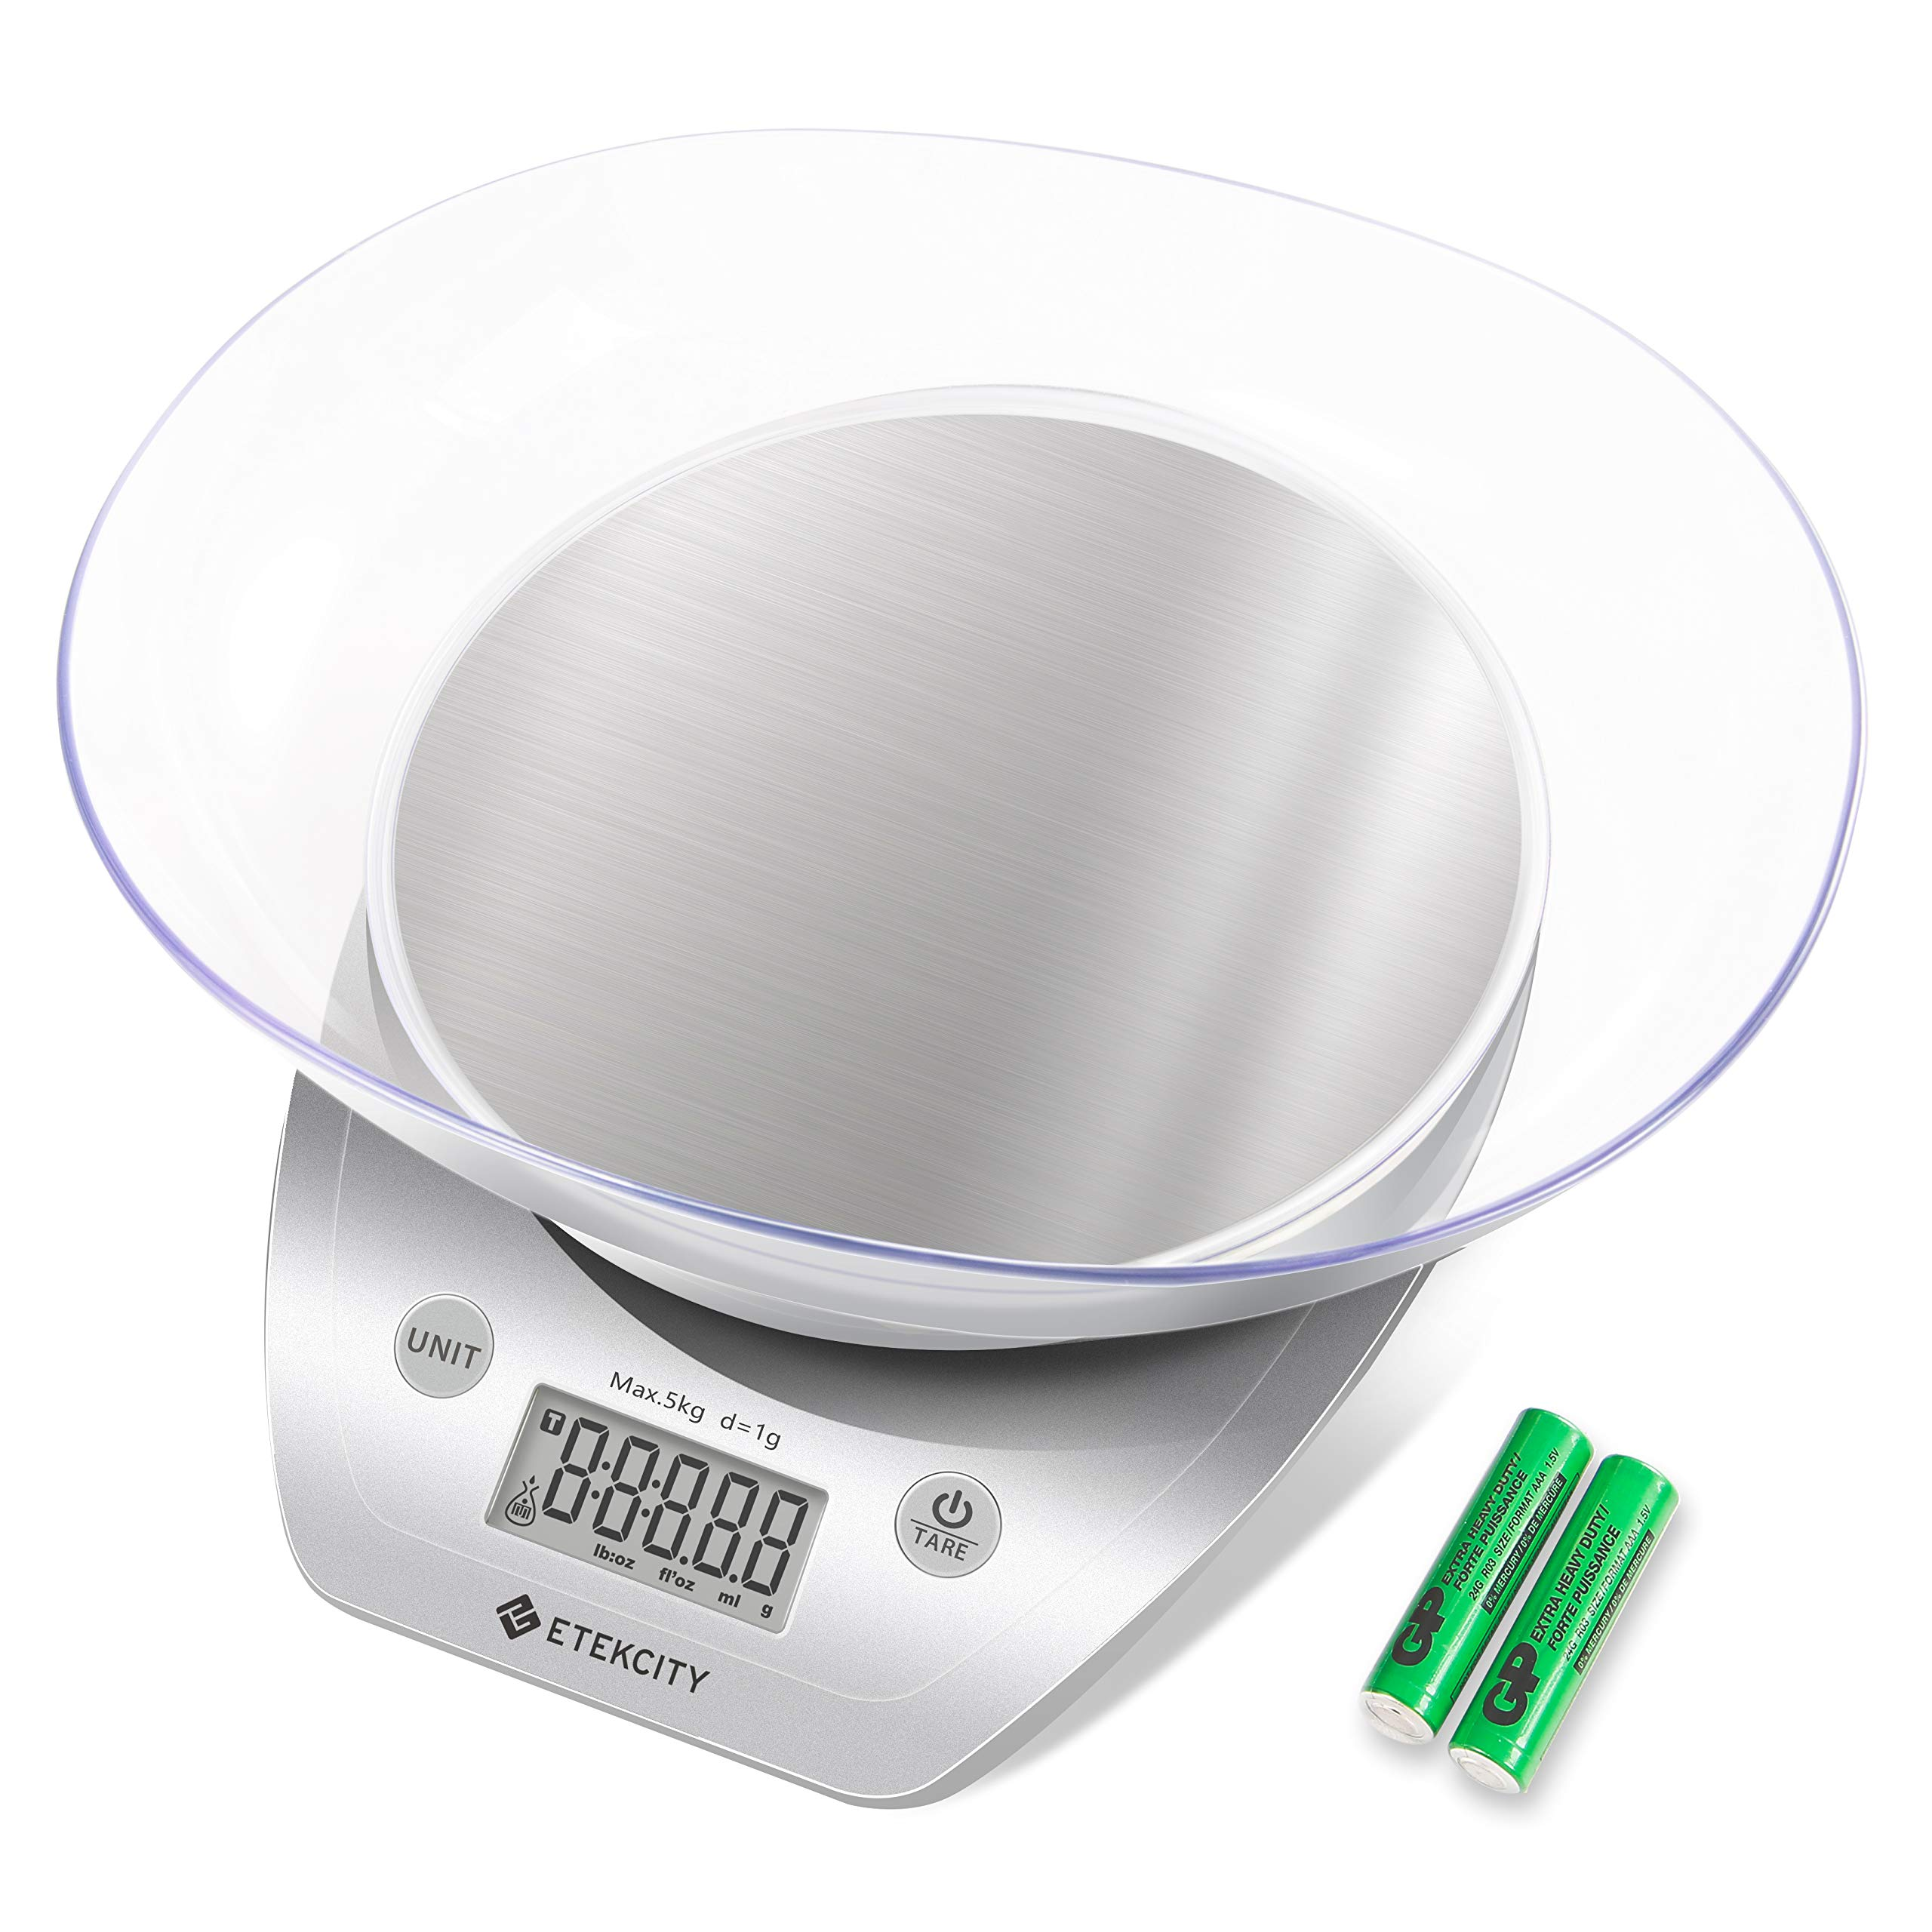 Etekcity Food Kitchen Scales Digital Weight Grams and Oz for Cooking and Baking, Removable Bowl, Stainless Steel, Silver by Etekcity